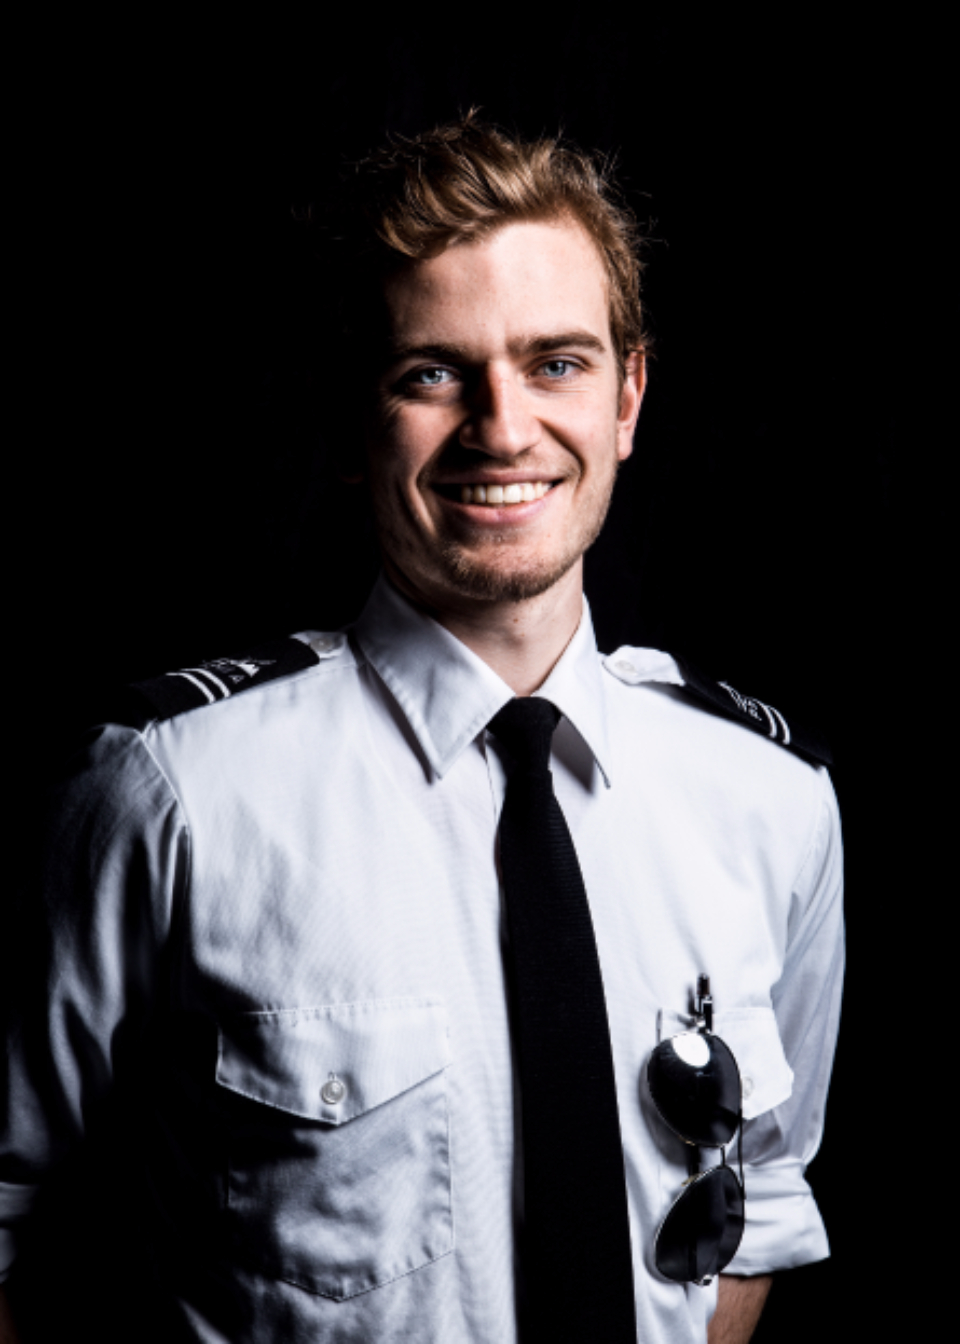 portrait pilot captain uniform male young boy guy person aviation aviators aviator flying fly